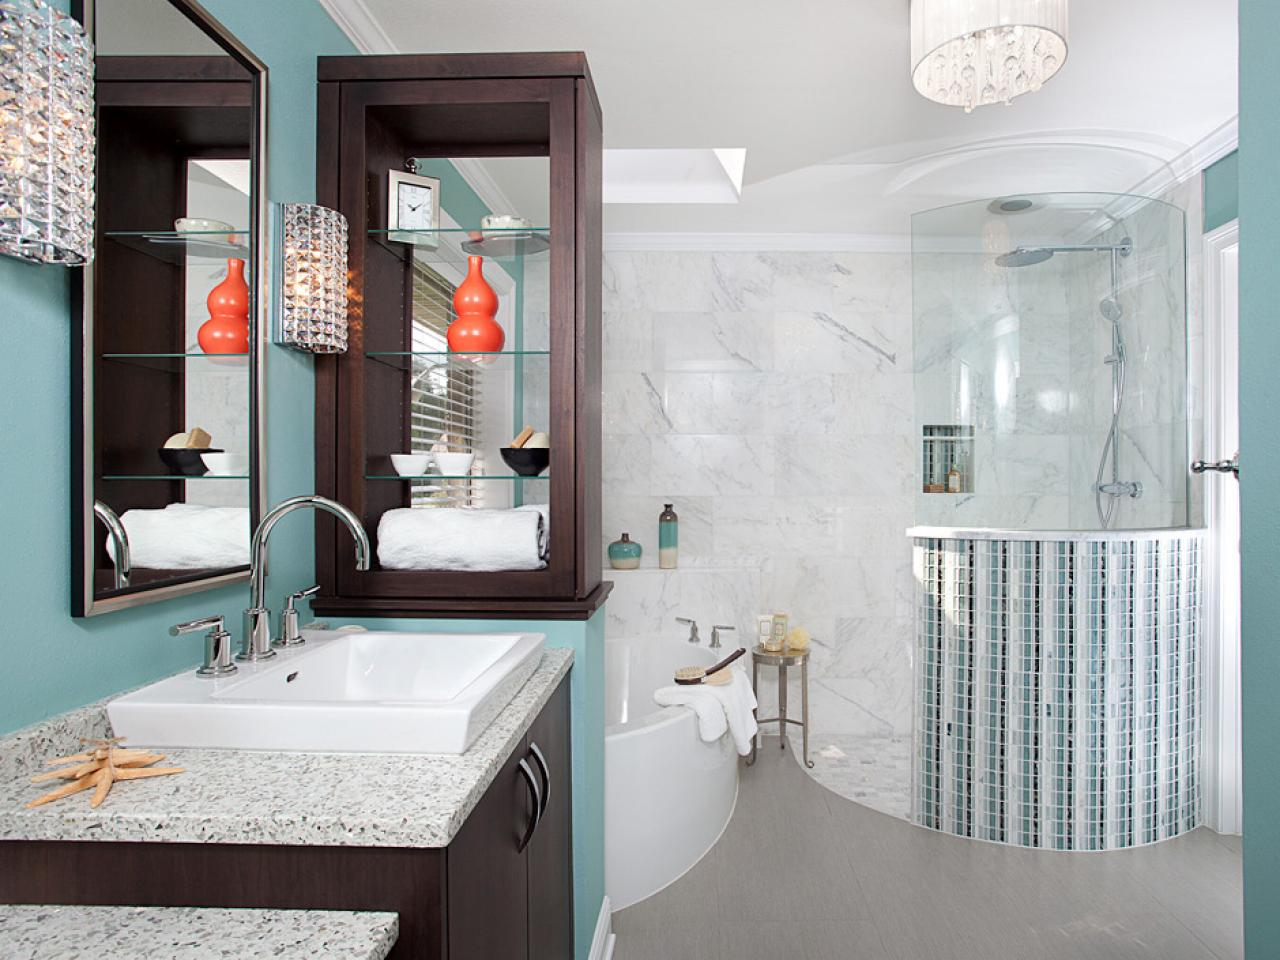 Bathroom decorating tips ideas pictures from hgtv hgtv for Bathroom accents